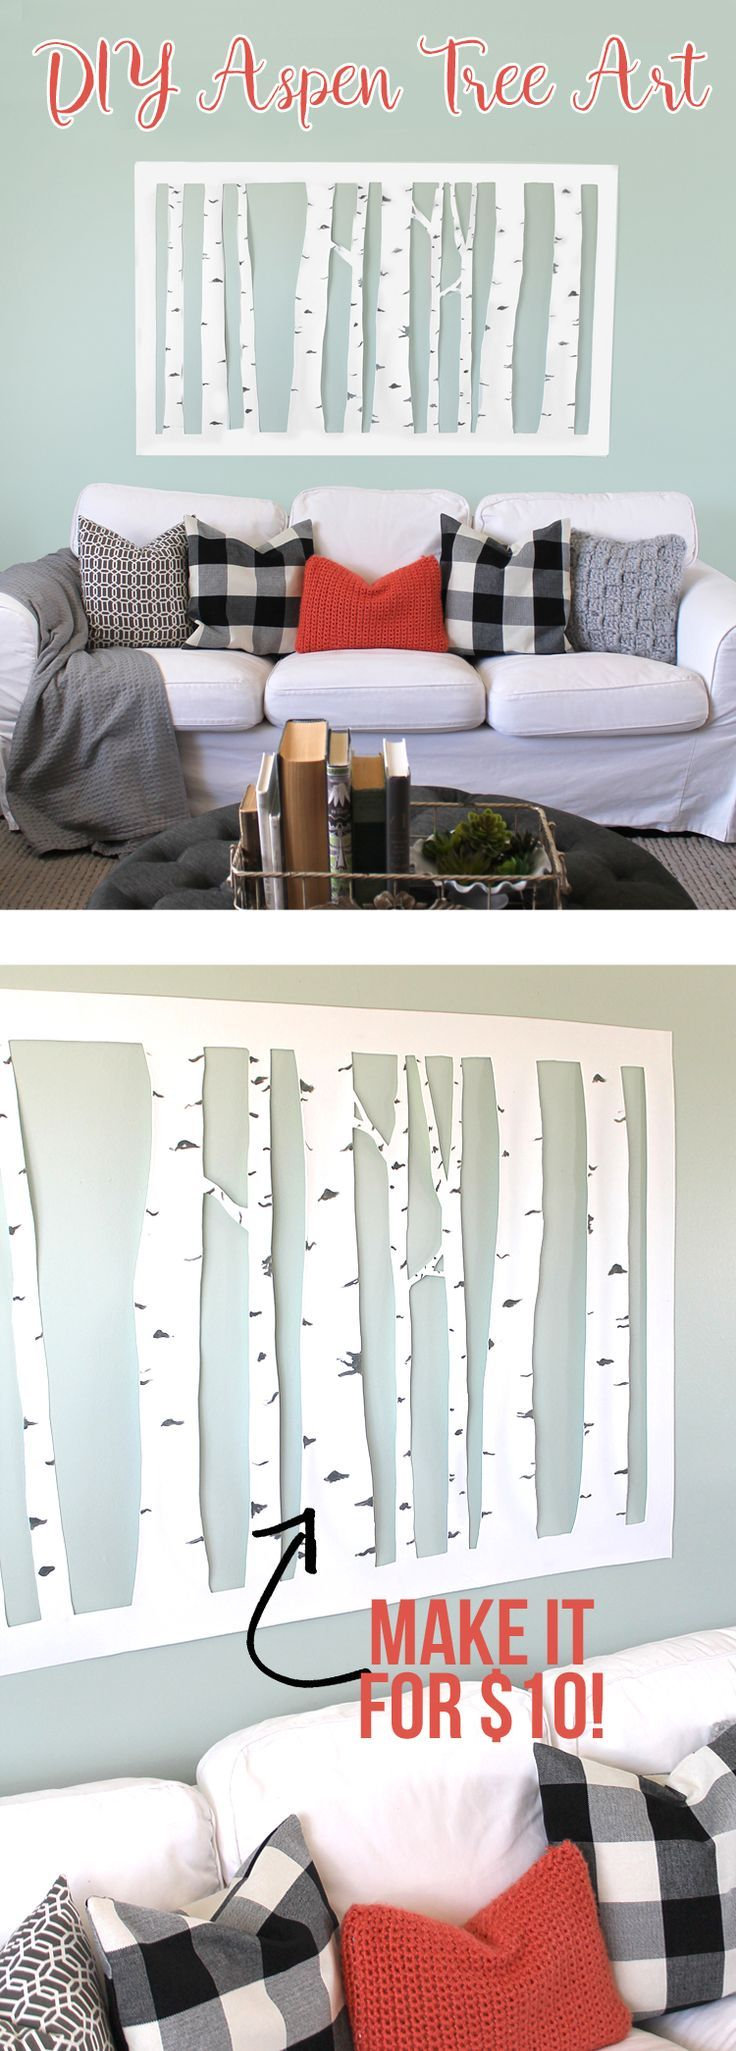 250 best CELEBRATE: Fall images on Pinterest | Fall crafts, Fall diy ...